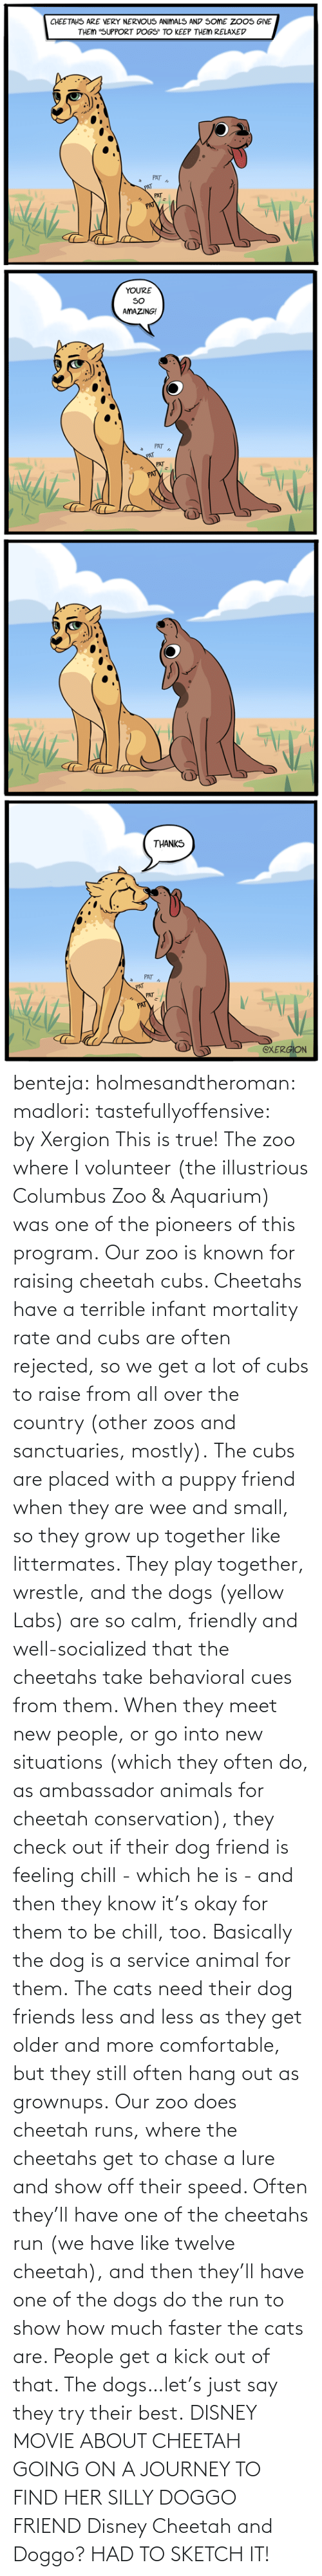 Chill: benteja:  holmesandtheroman:  madlori:  tastefullyoffensive: by Xergion This is true! The zoo where I volunteer (the illustrious Columbus Zoo & Aquarium) was one of the pioneers of this program. Our zoo is known for raising cheetah cubs. Cheetahs have a terrible infant mortality rate and cubs are often rejected, so we get a lot of cubs to raise from all over the country (other zoos and sanctuaries, mostly). The cubs are placed with a puppy friend when they are wee and small, so they grow up together like littermates. They play together, wrestle, and the dogs (yellow Labs) are so calm, friendly and well-socialized that the cheetahs take behavioral cues from them. When they meet new people, or go into new situations (which they often do, as ambassador animals for cheetah conservation), they check out if their dog friend is feeling chill - which he is - and then they know it's okay for them to be chill, too. Basically the dog is a service animal for them. The cats need their dog friends less and less as they get older and more comfortable, but they still often hang out as grownups. Our zoo does cheetah runs, where the cheetahs get to chase a lure and show off their speed. Often they'll have one of the cheetahs run (we have like twelve cheetah), and then they'll have one of the dogs do the run to show how much faster the cats are. People get a kick out of that. The dogs…let's just say they try their best.   DISNEY MOVIE ABOUT CHEETAH GOING ON A JOURNEY TO FIND HER SILLY DOGGO FRIEND  Disney Cheetah and Doggo? HAD TO SKETCH IT!